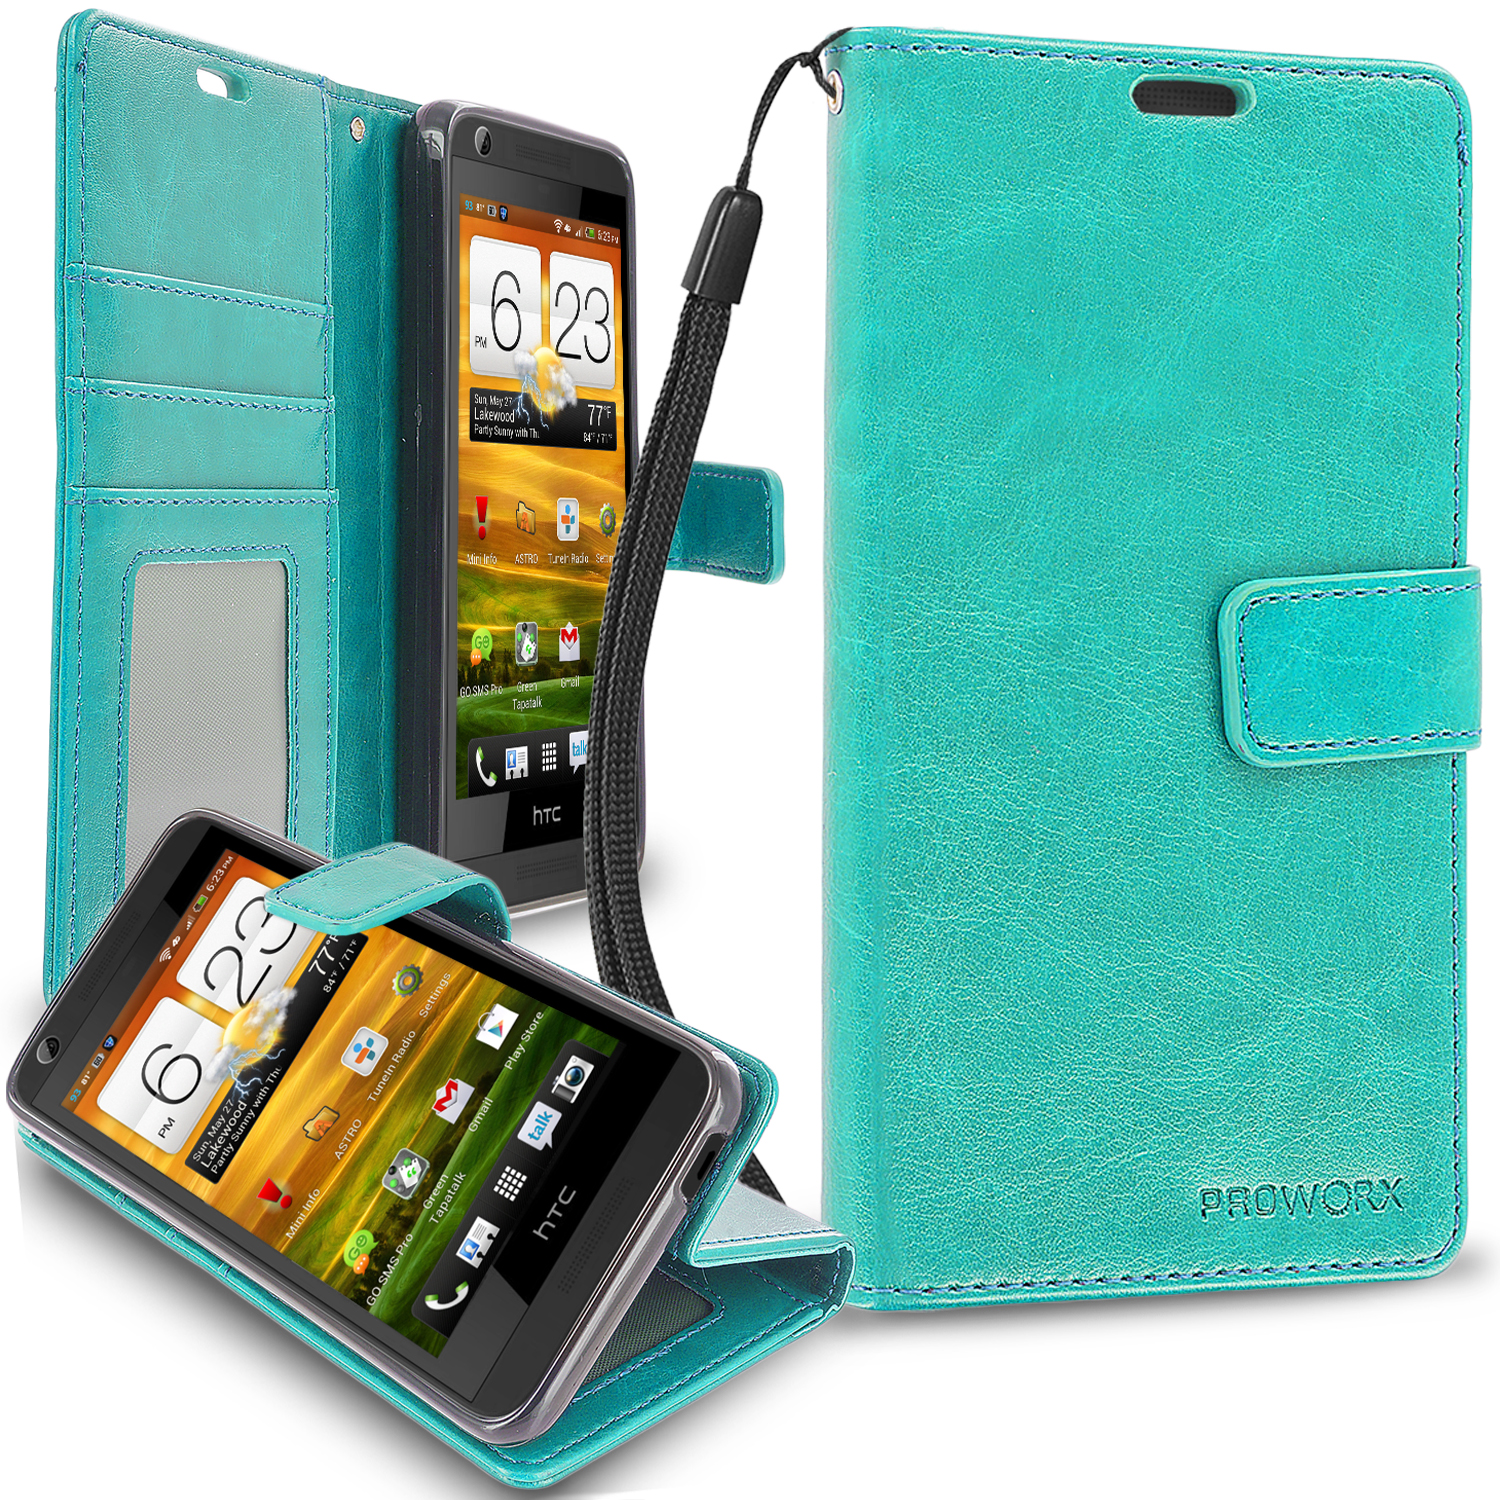 HTC Desire 626 / 626s Mint Green ProWorx Wallet Case Luxury PU Leather Case Cover With Card Slots & Stand